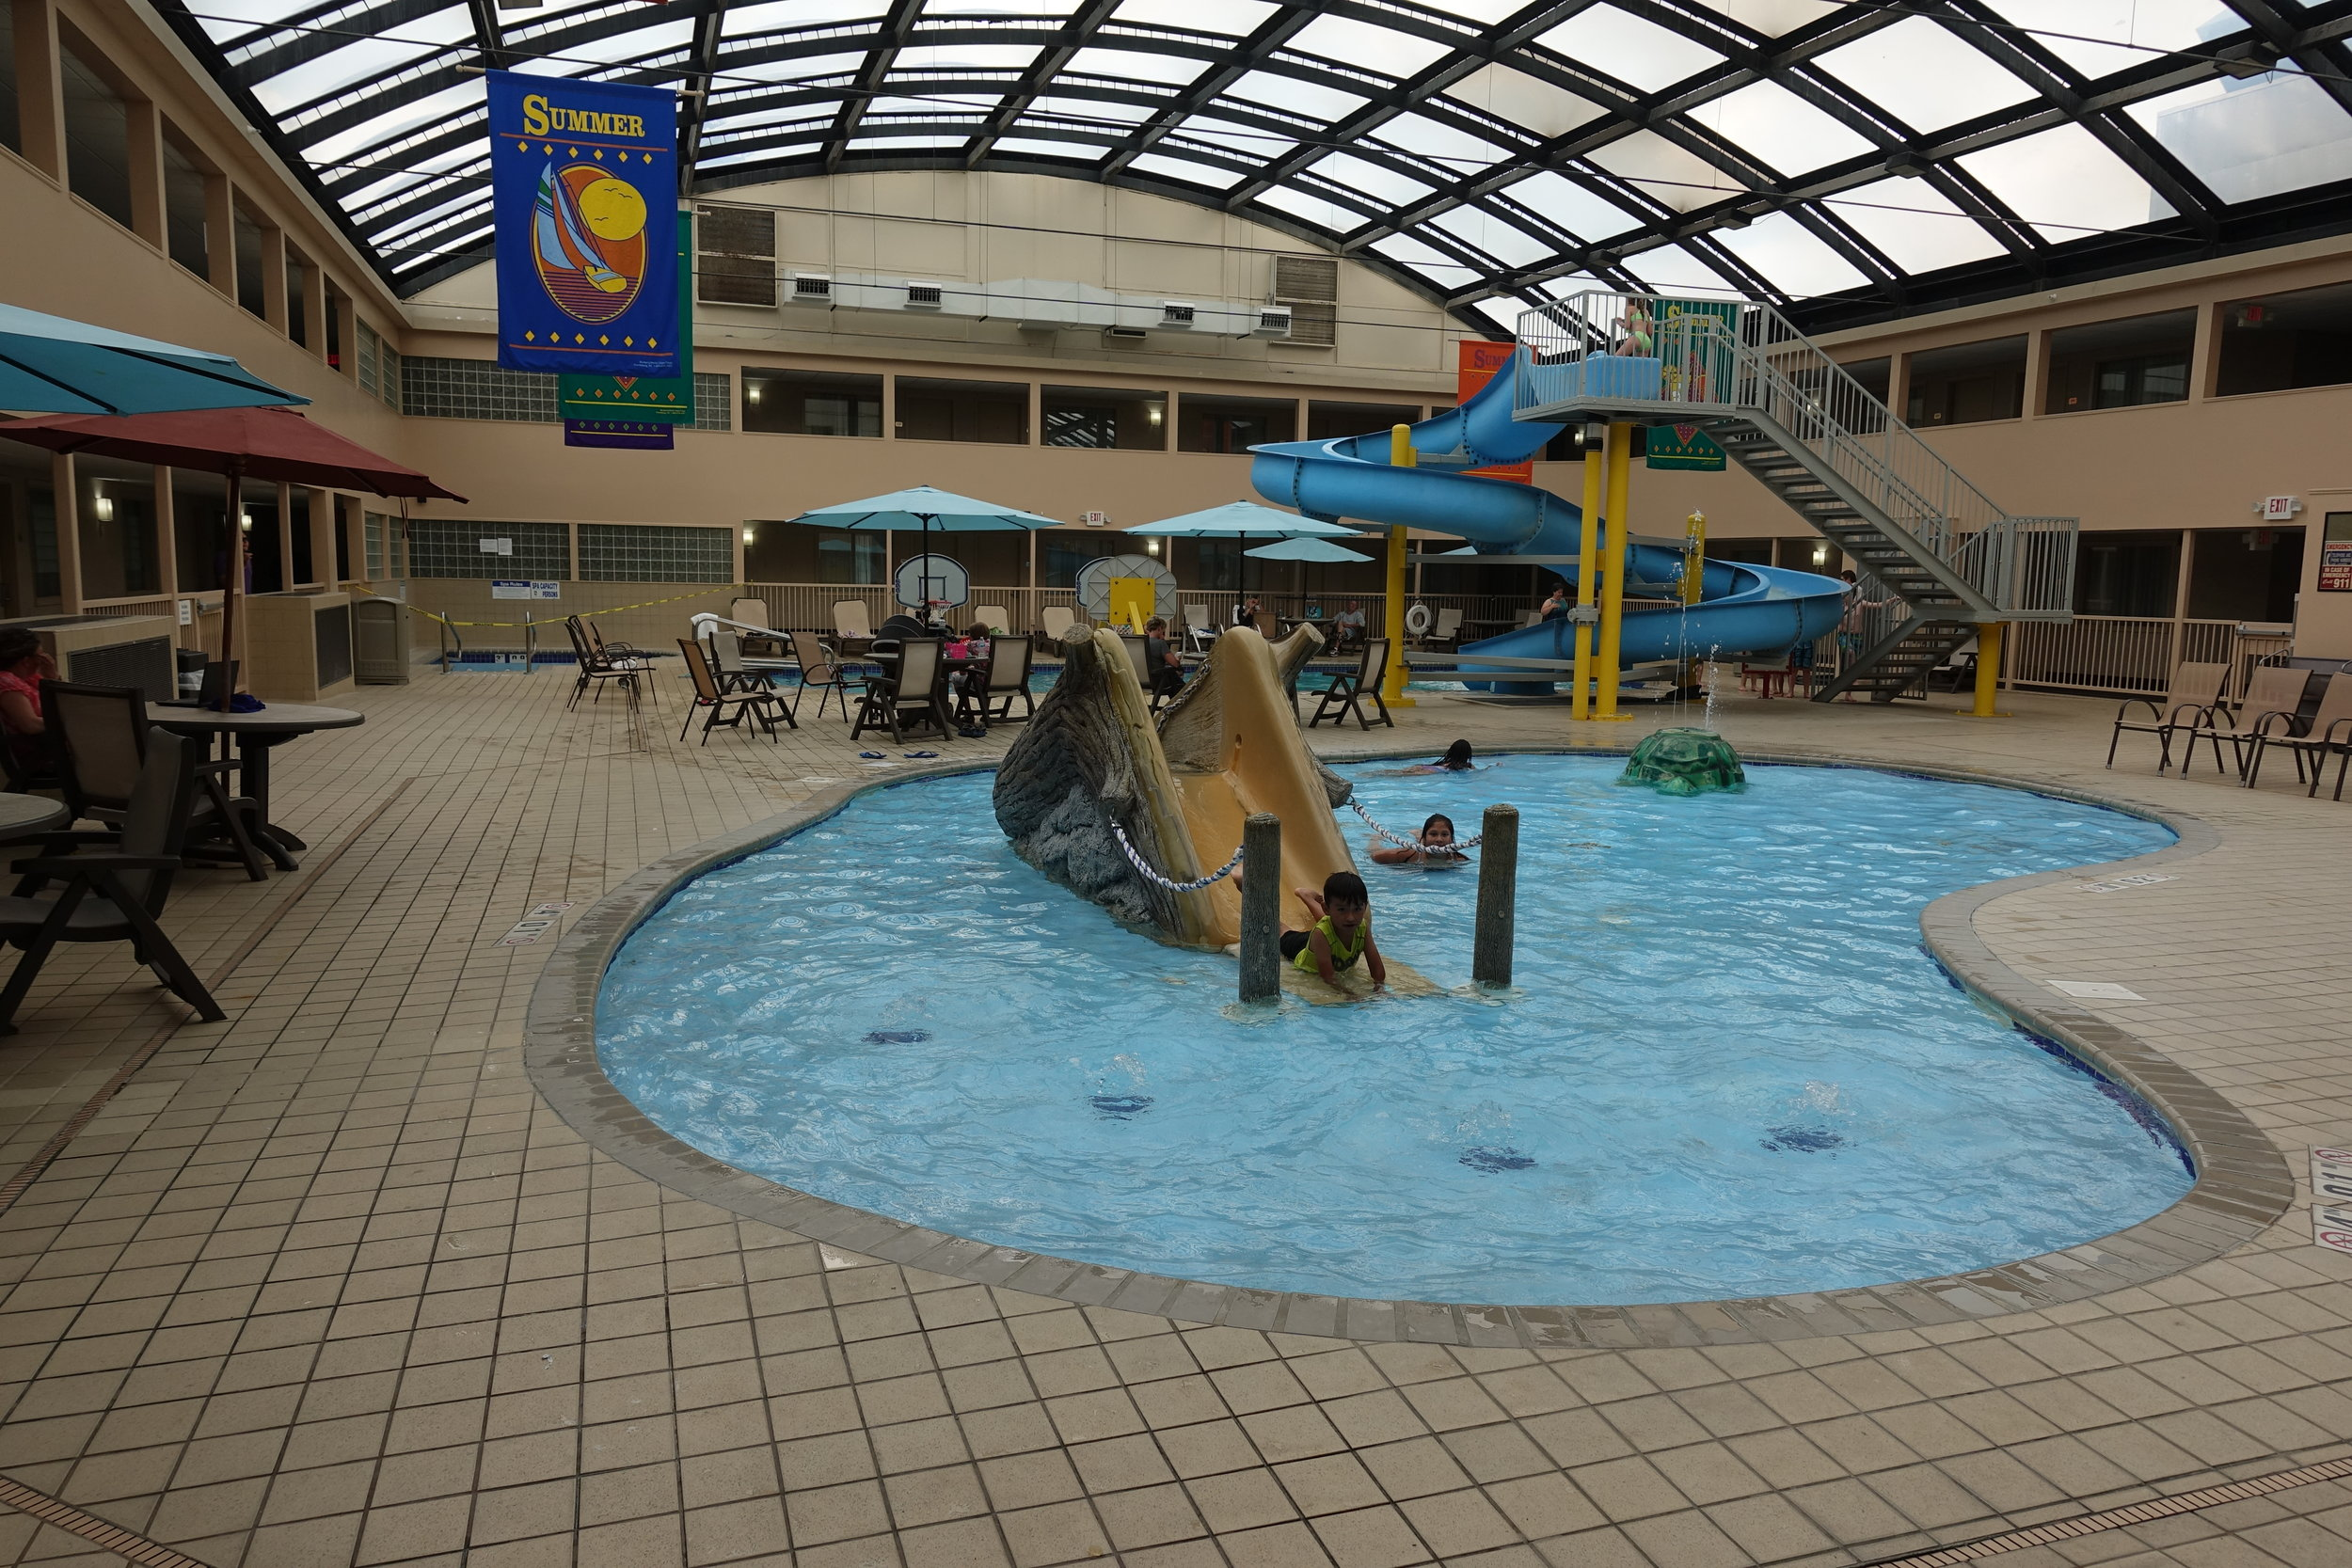 The pool at Kahler Apache Hotel features a two-story waterslide